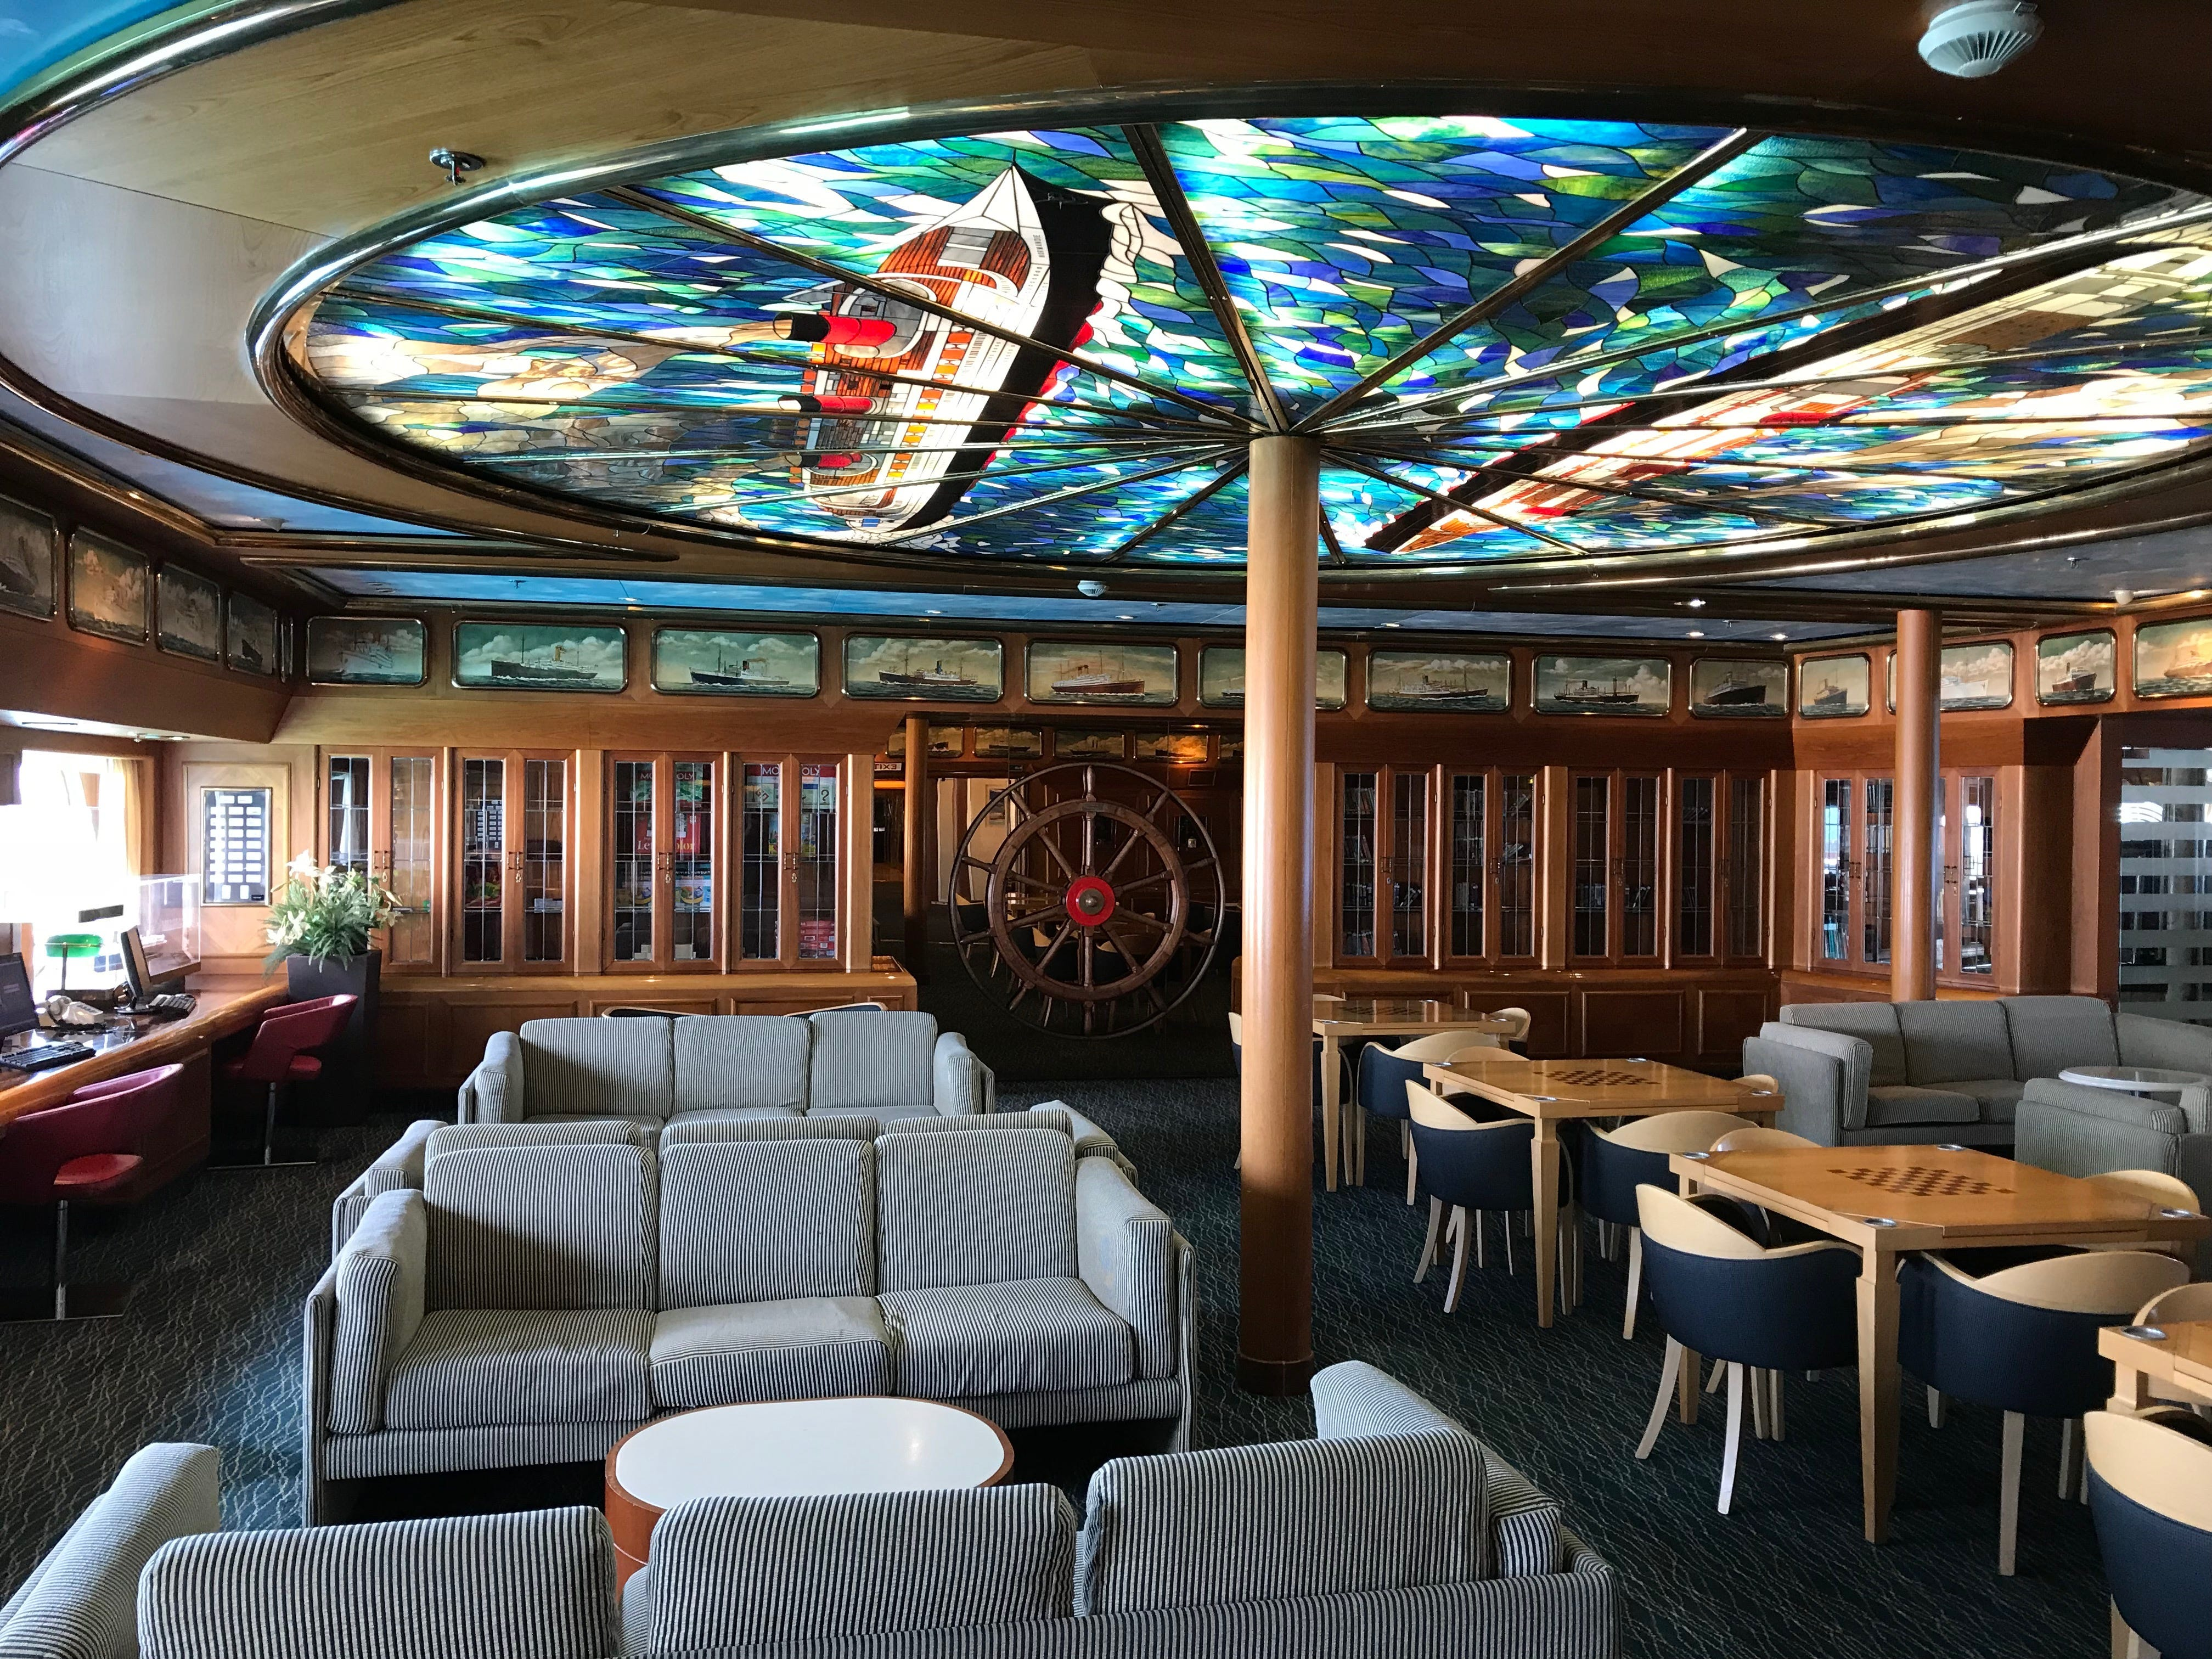 The Helm retains much of its ocean liner-themed decor from its first incarnation as the Celebration's Admiralty Library.